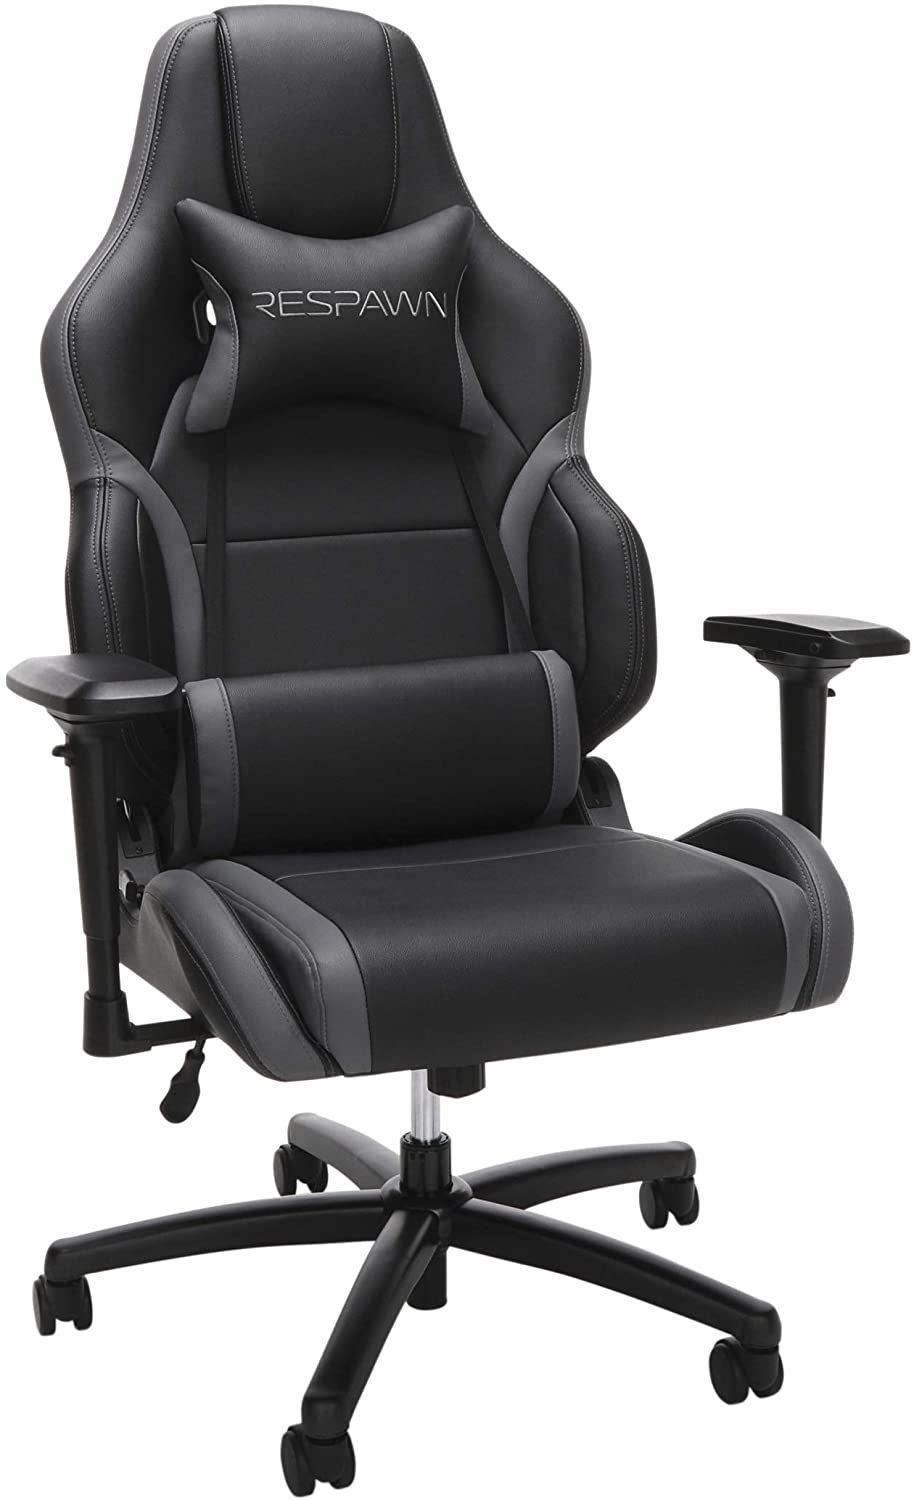 3. RESPAWN RSP-400 ( Big and Tall Racing Style Gaming Chair)